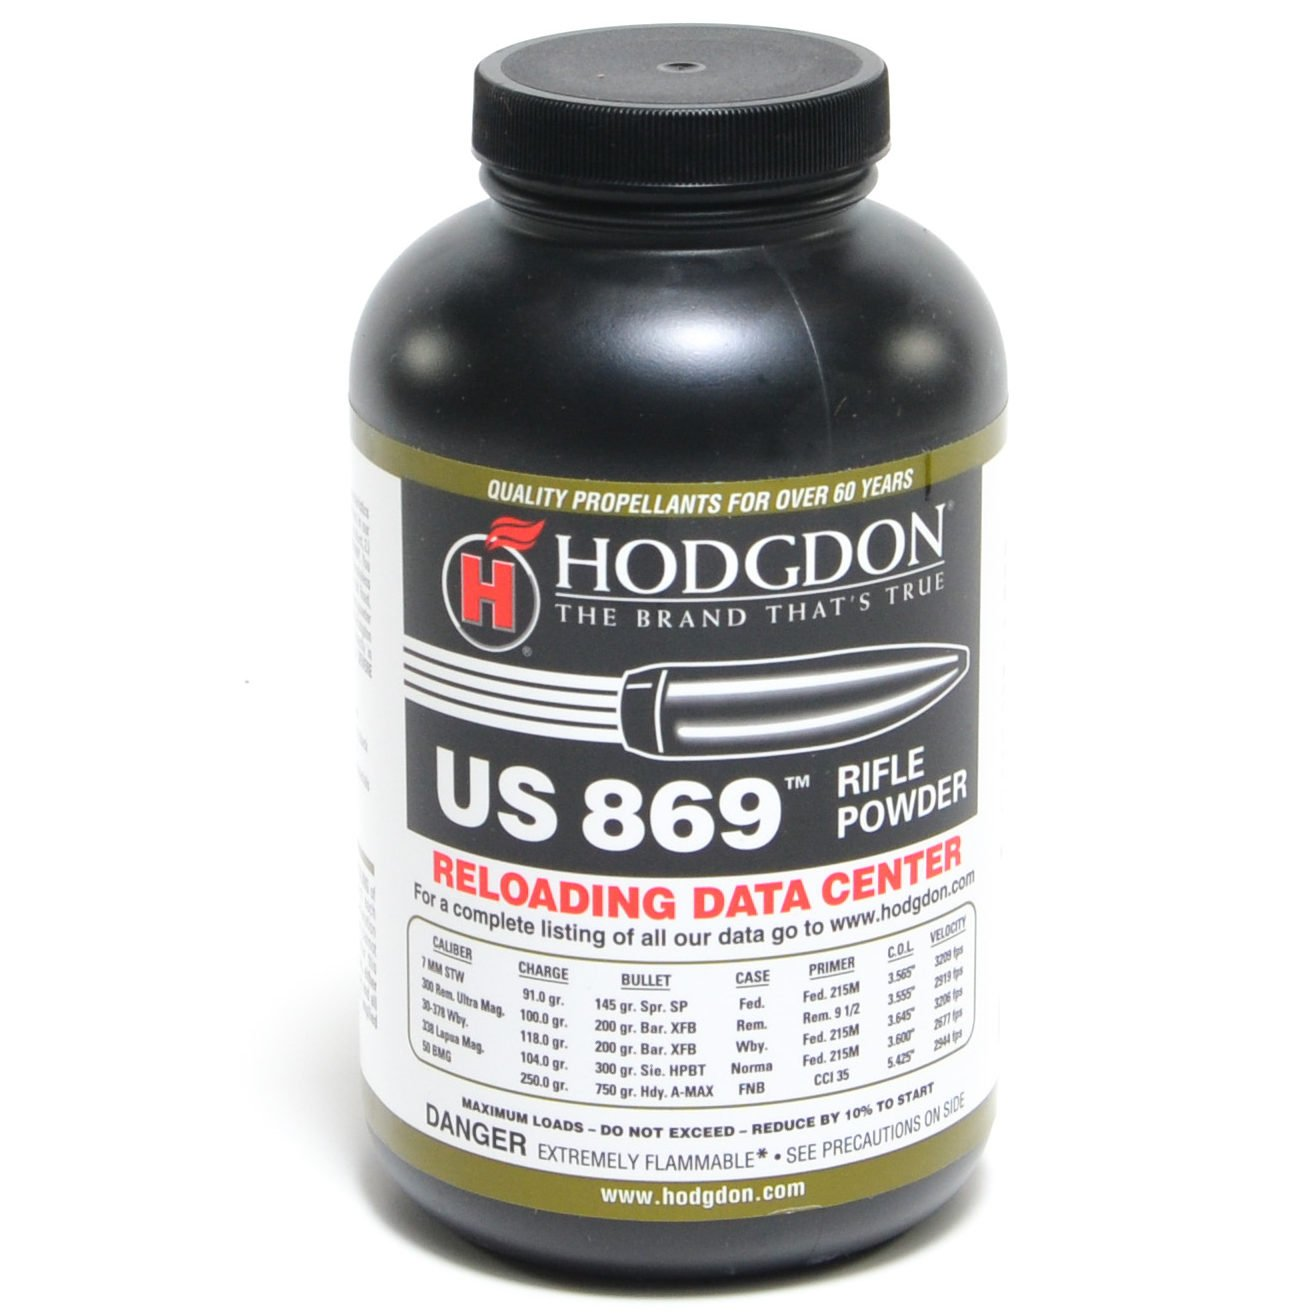 Hodgdon Us 869 1 Pound of Smokeless Powder